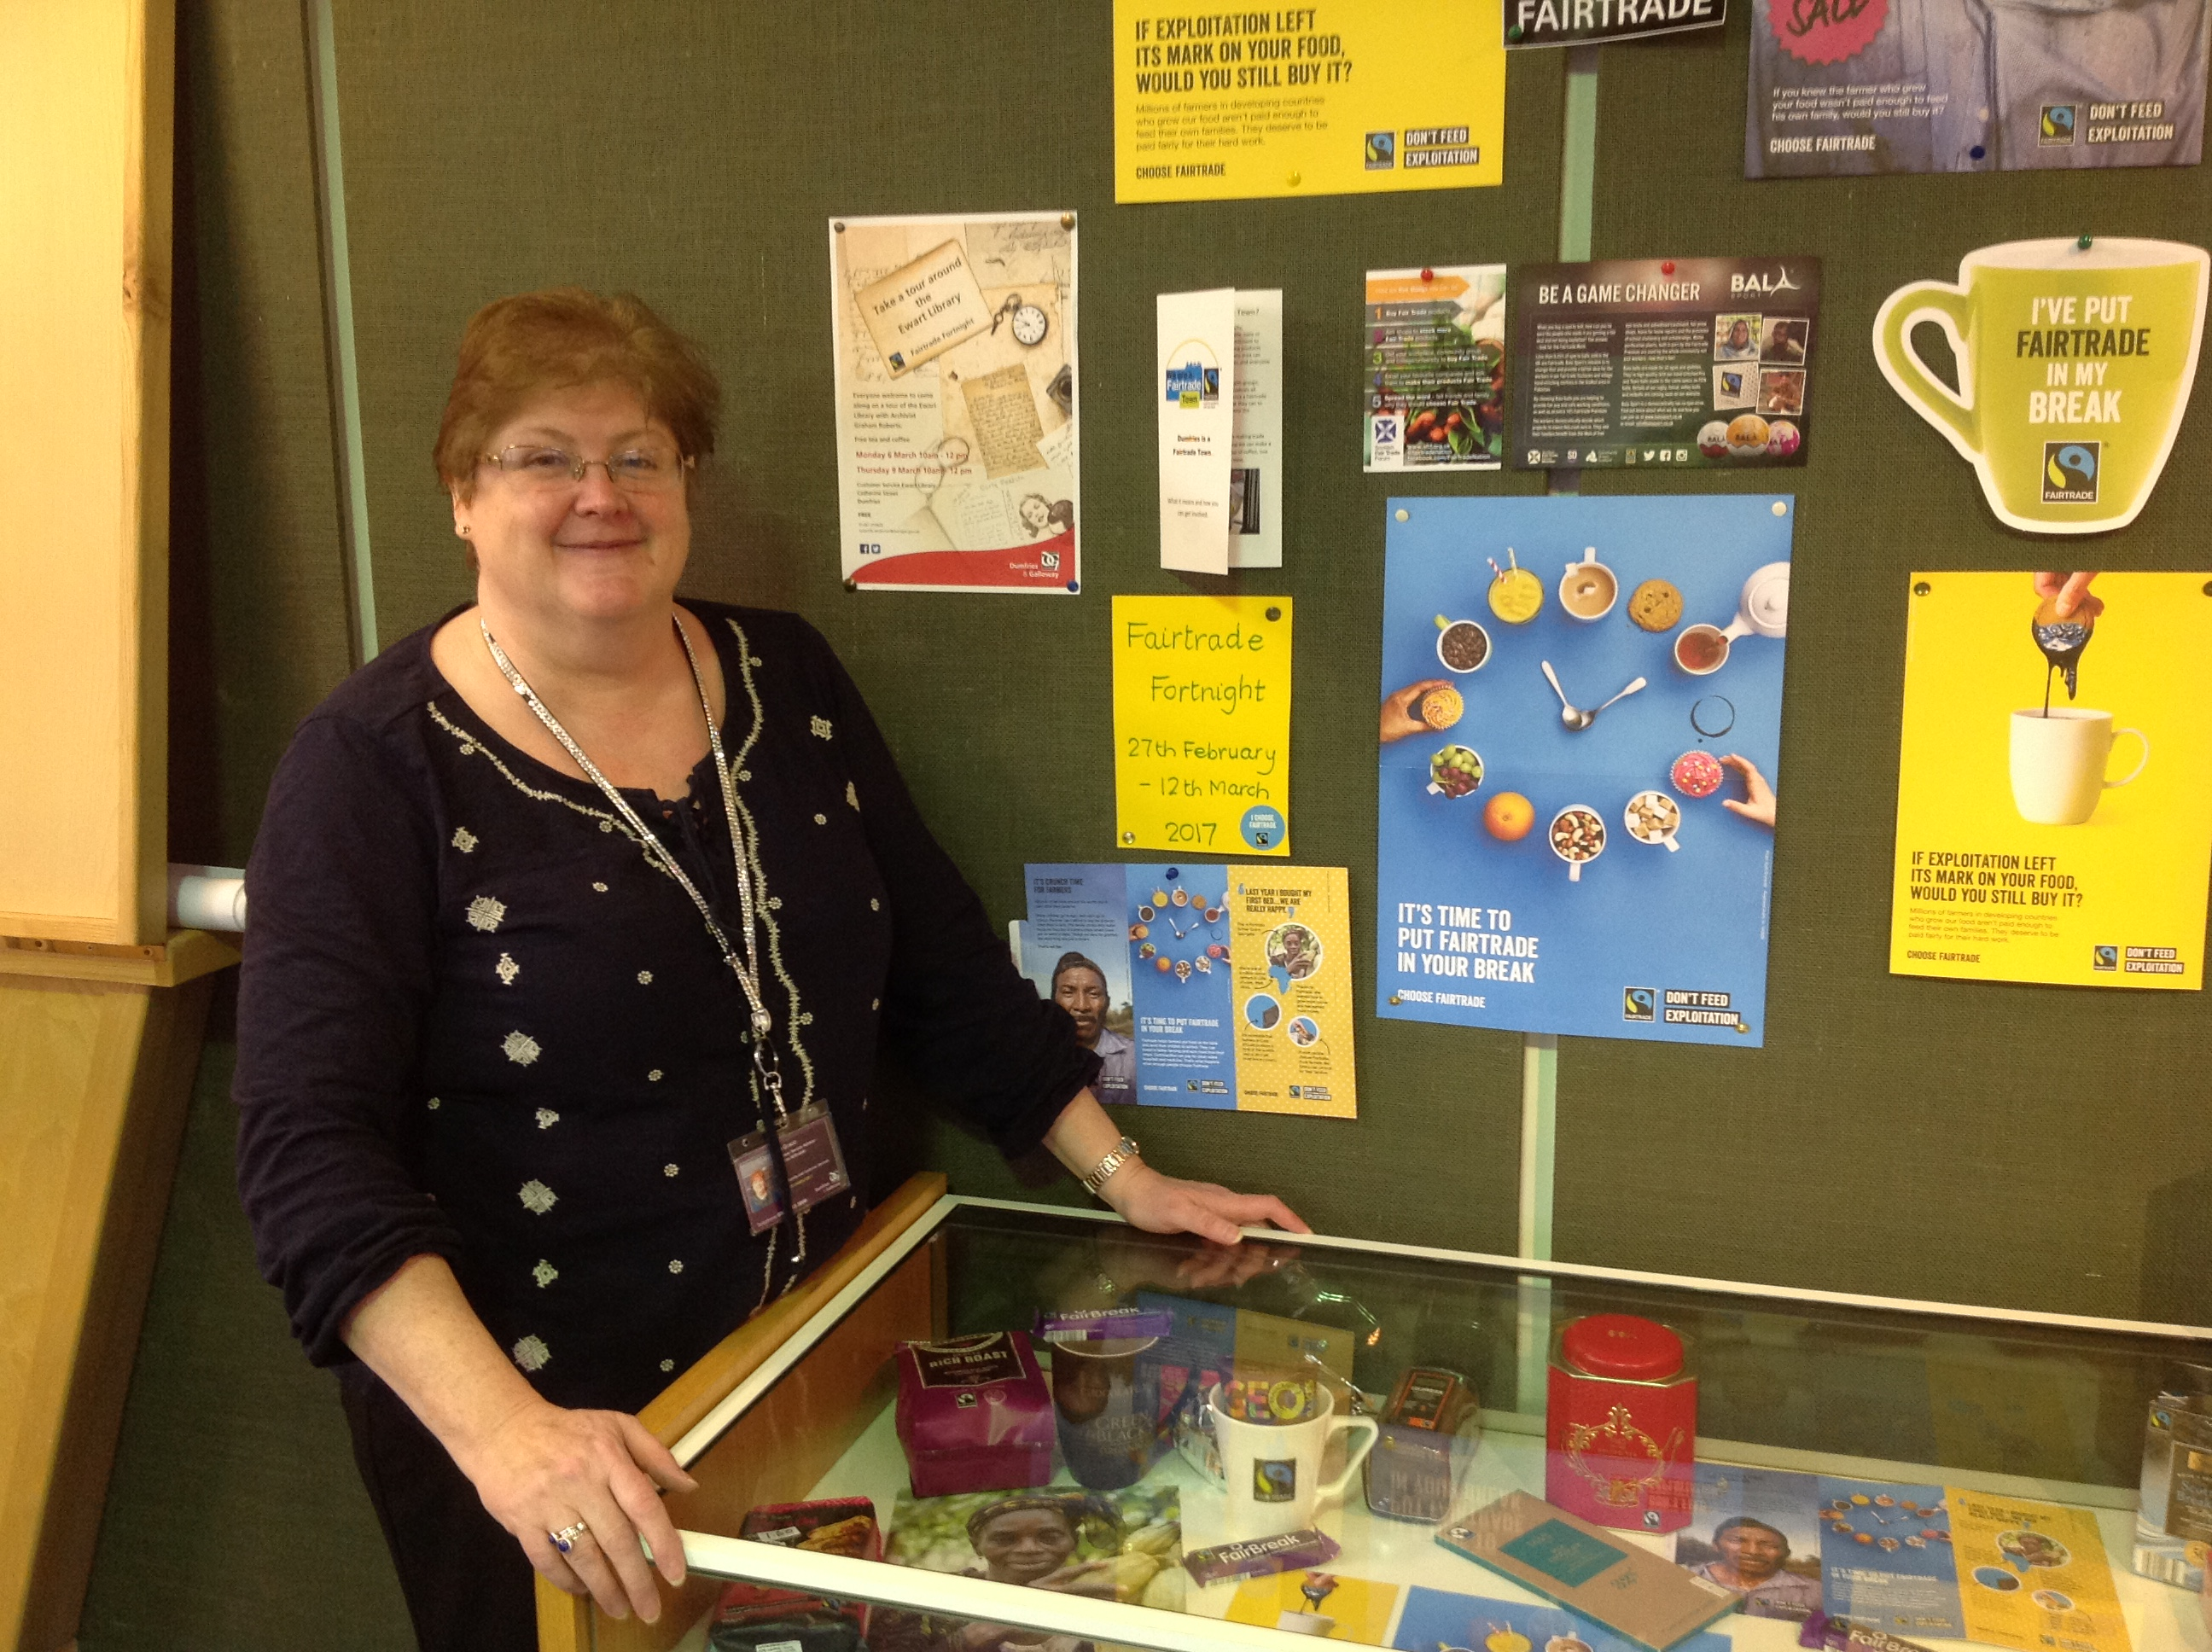 Fairtrade Display at Lochthorn Library